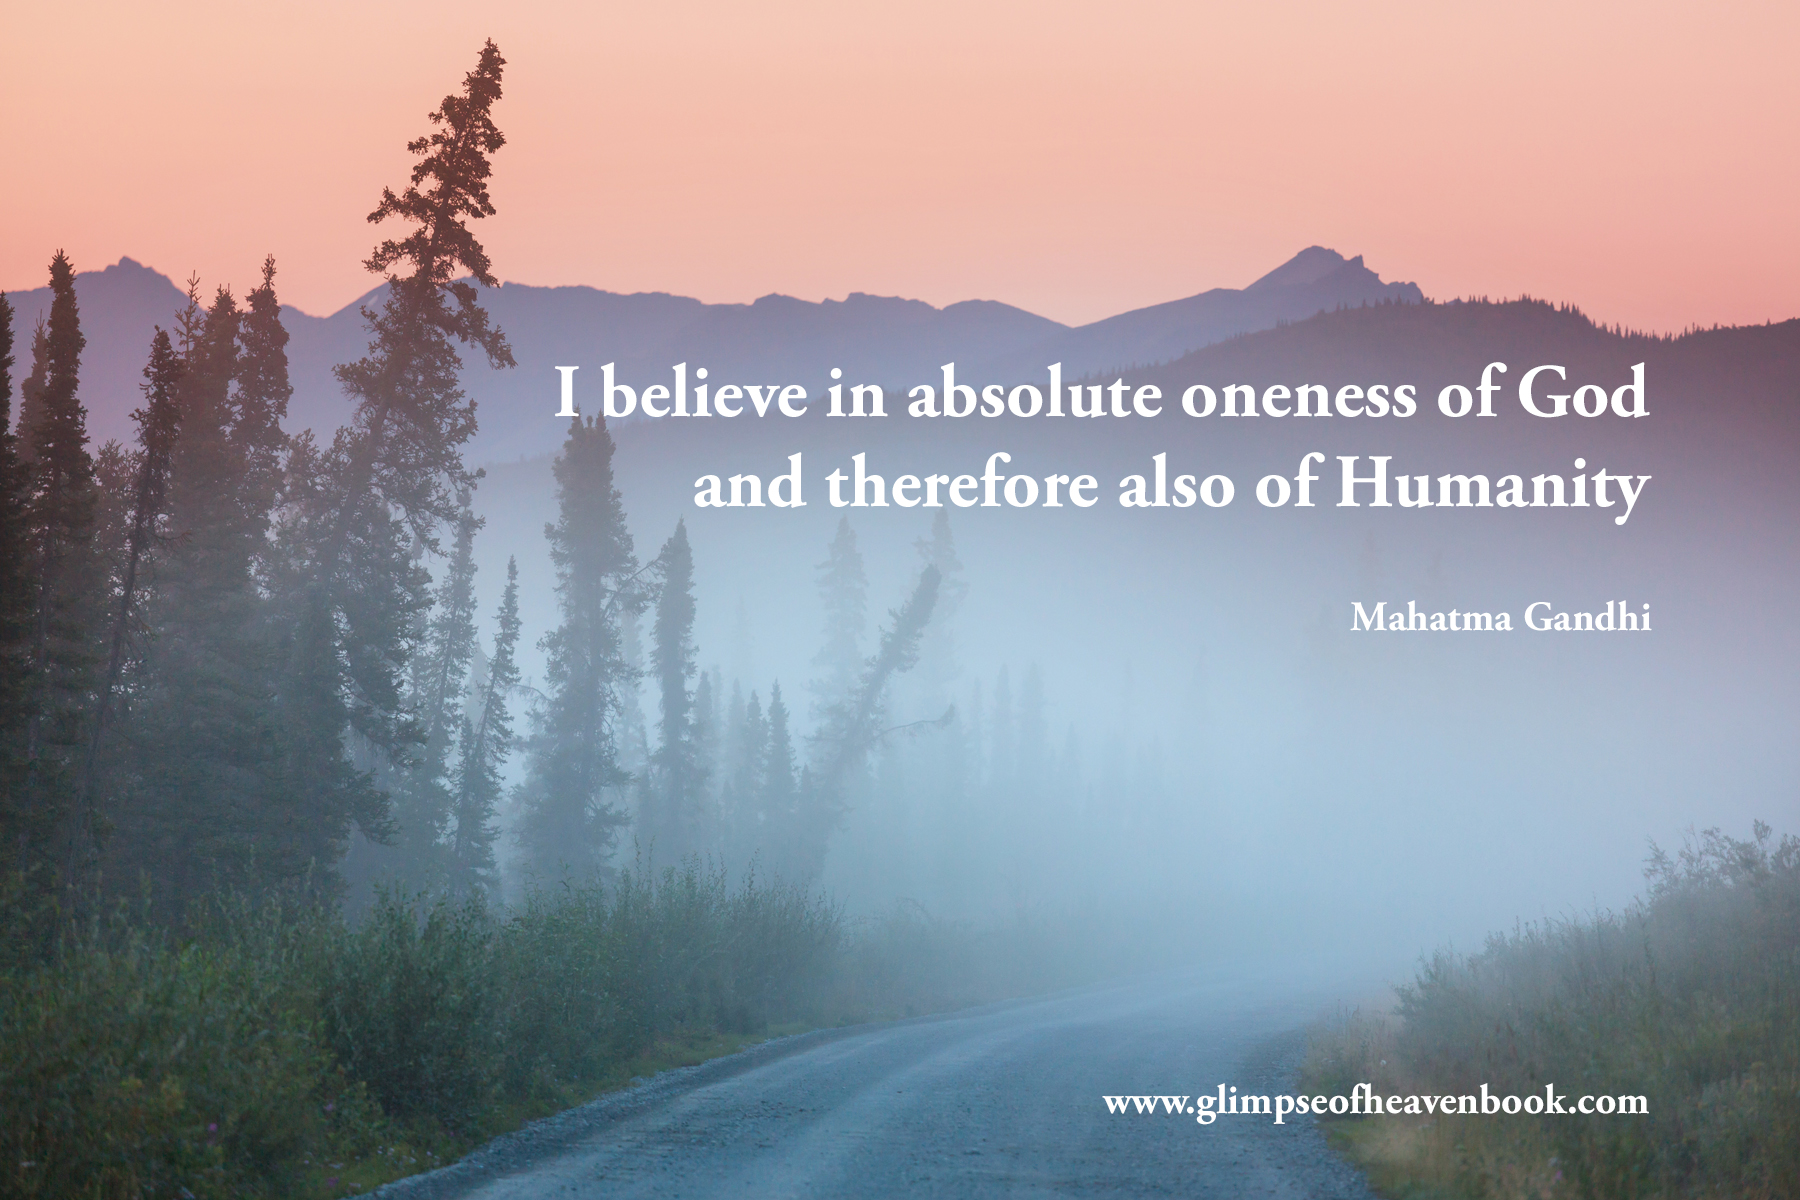 I believe in the absolute oneness of God and therefore also of humanity. Mahatma Gandhi